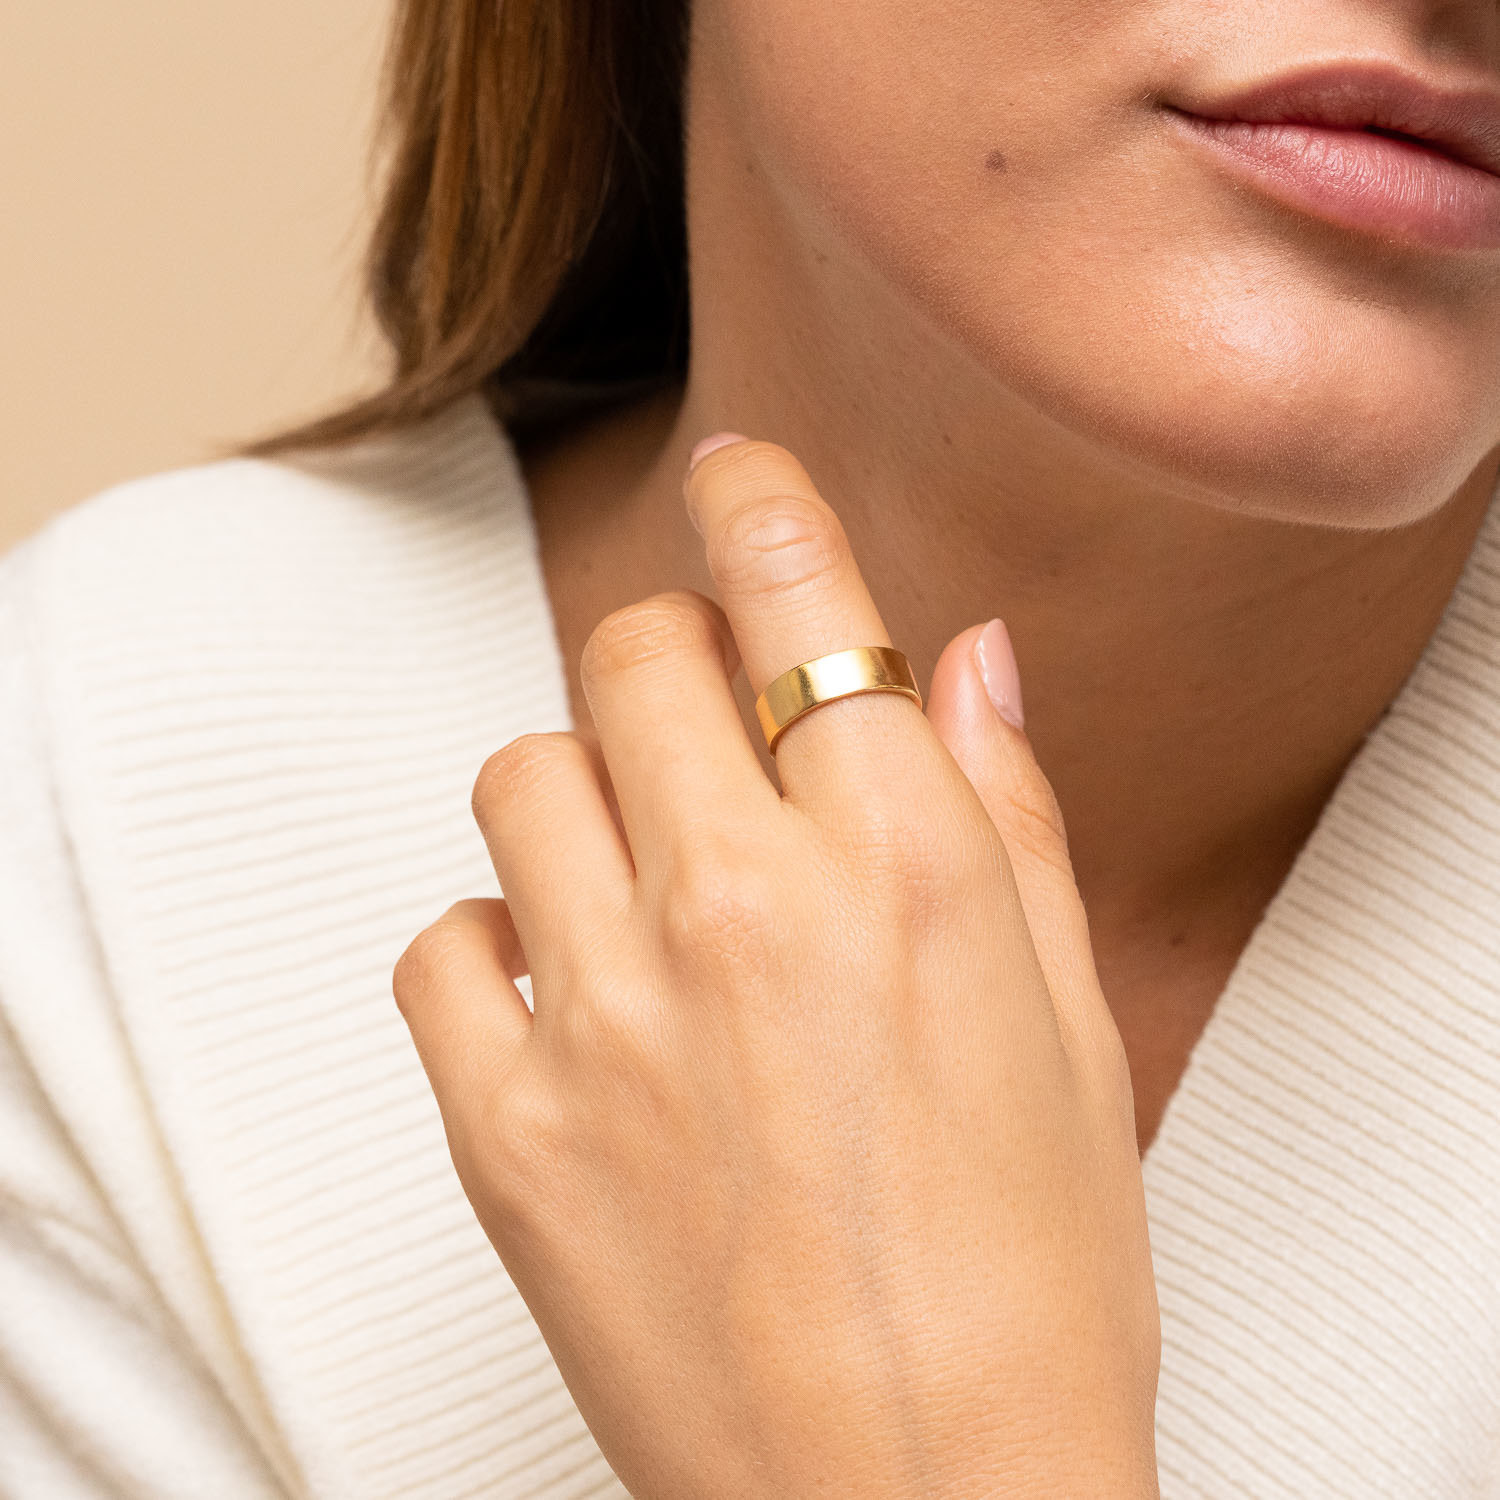 Model wearing gold ring on index finger